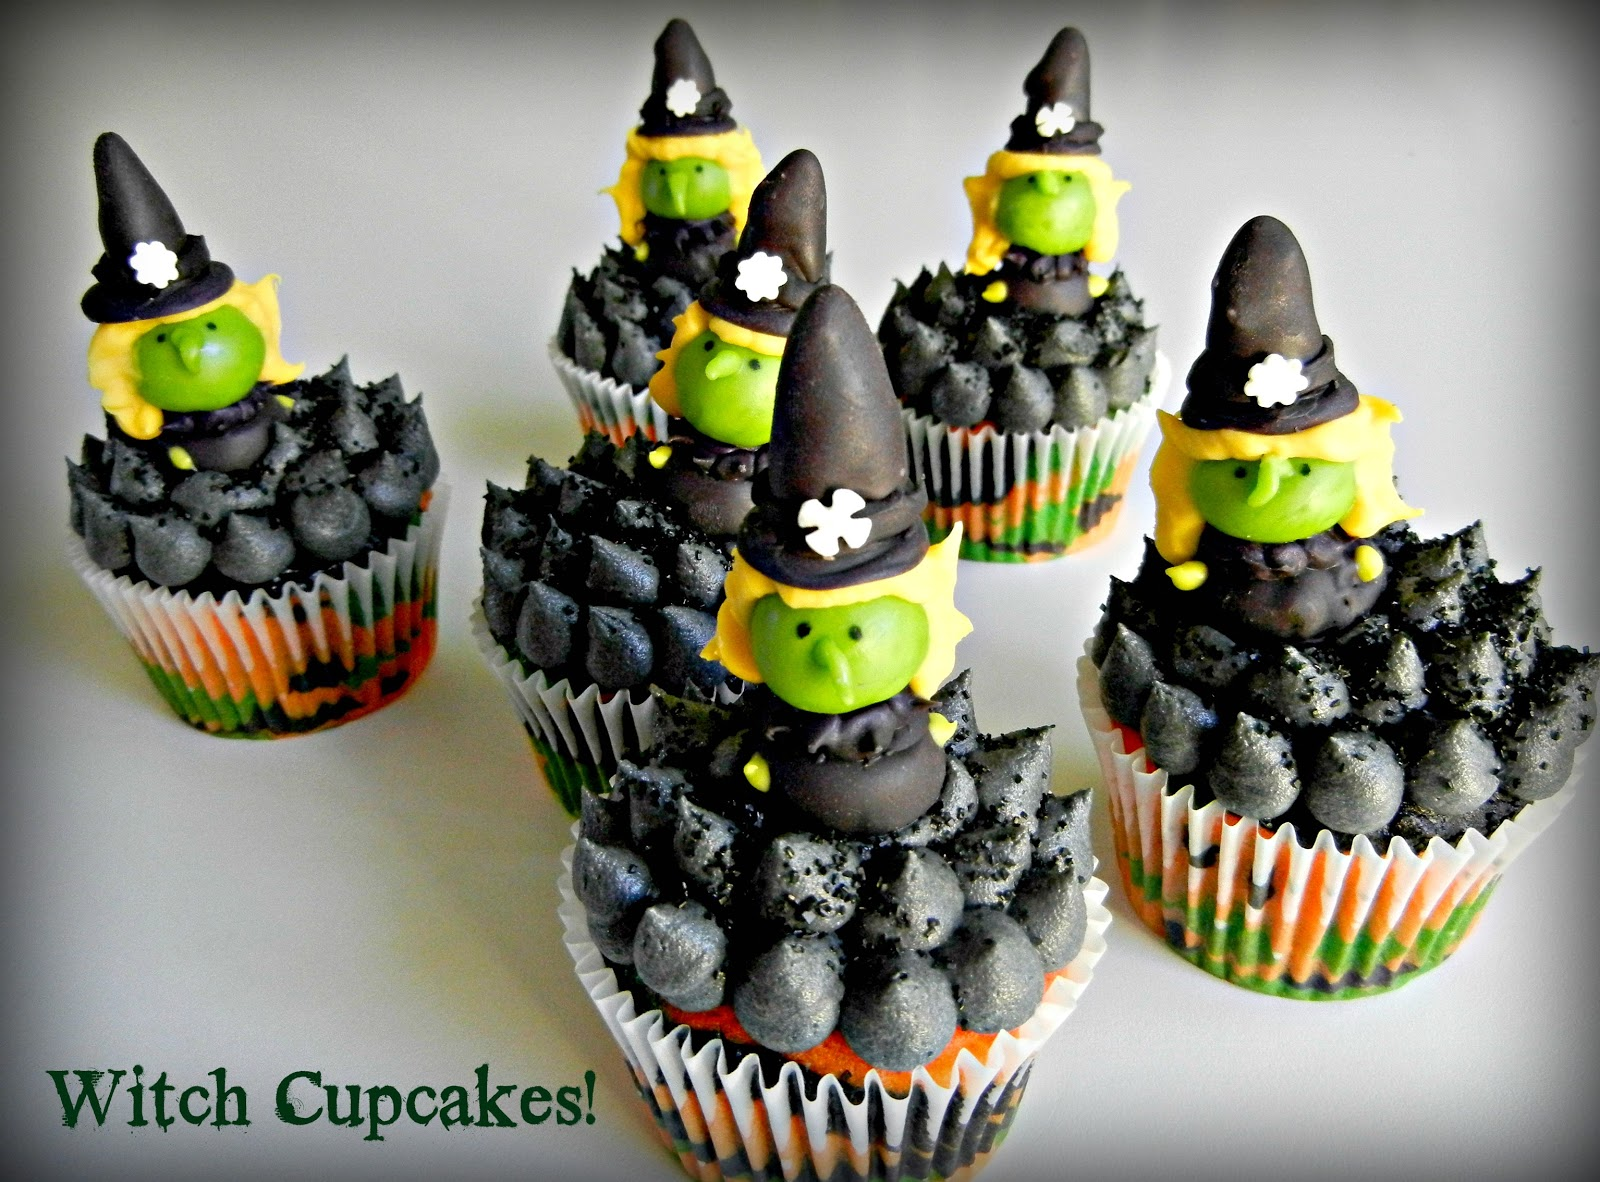 Sugar Swings! Serve Some: witchy cupcakes for halloween    !